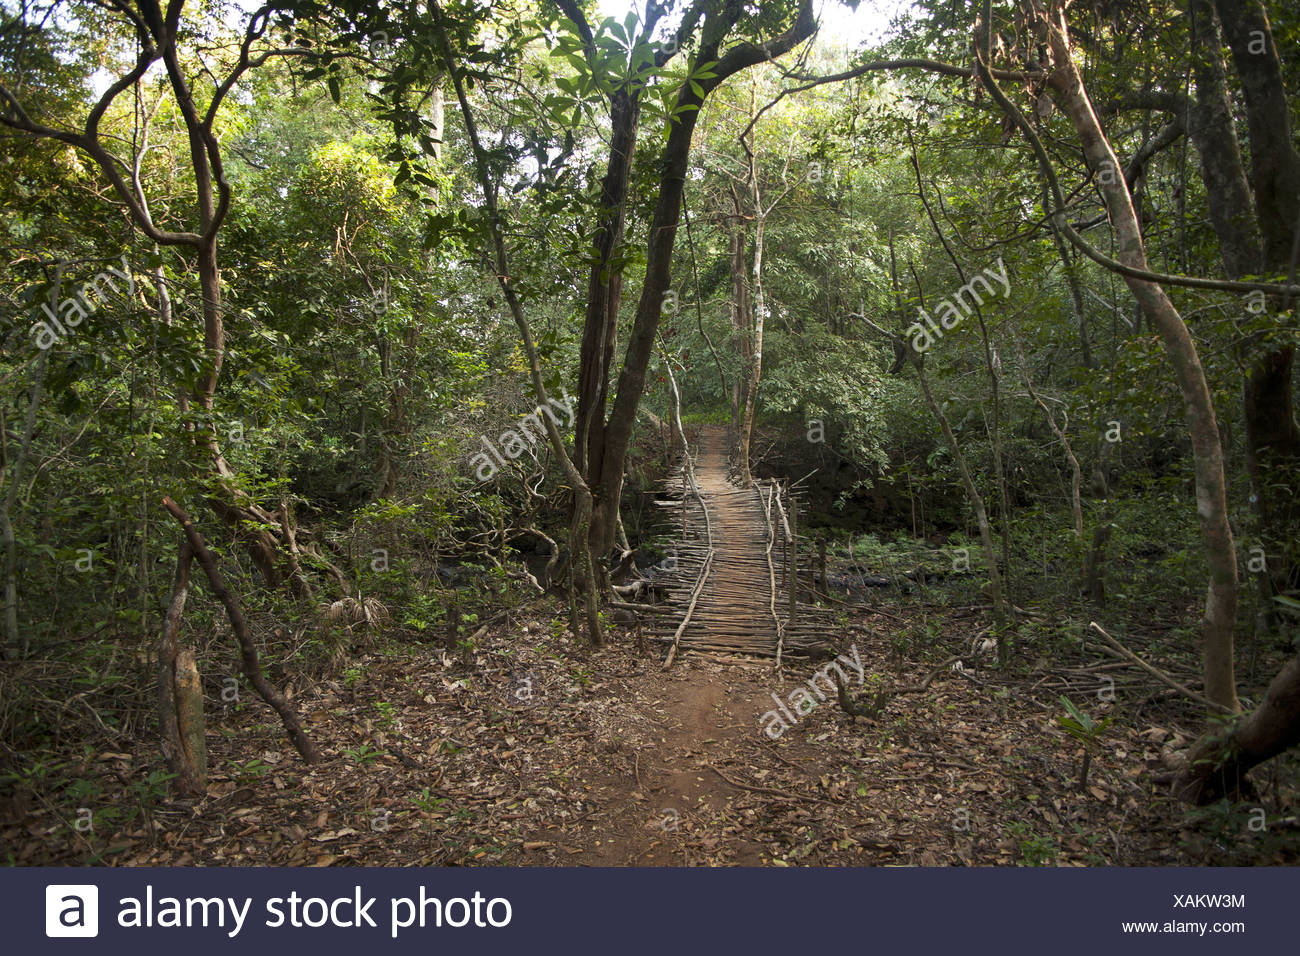 Forest path in Anshi tiger reserve area. Karnataka, India Stock Photo